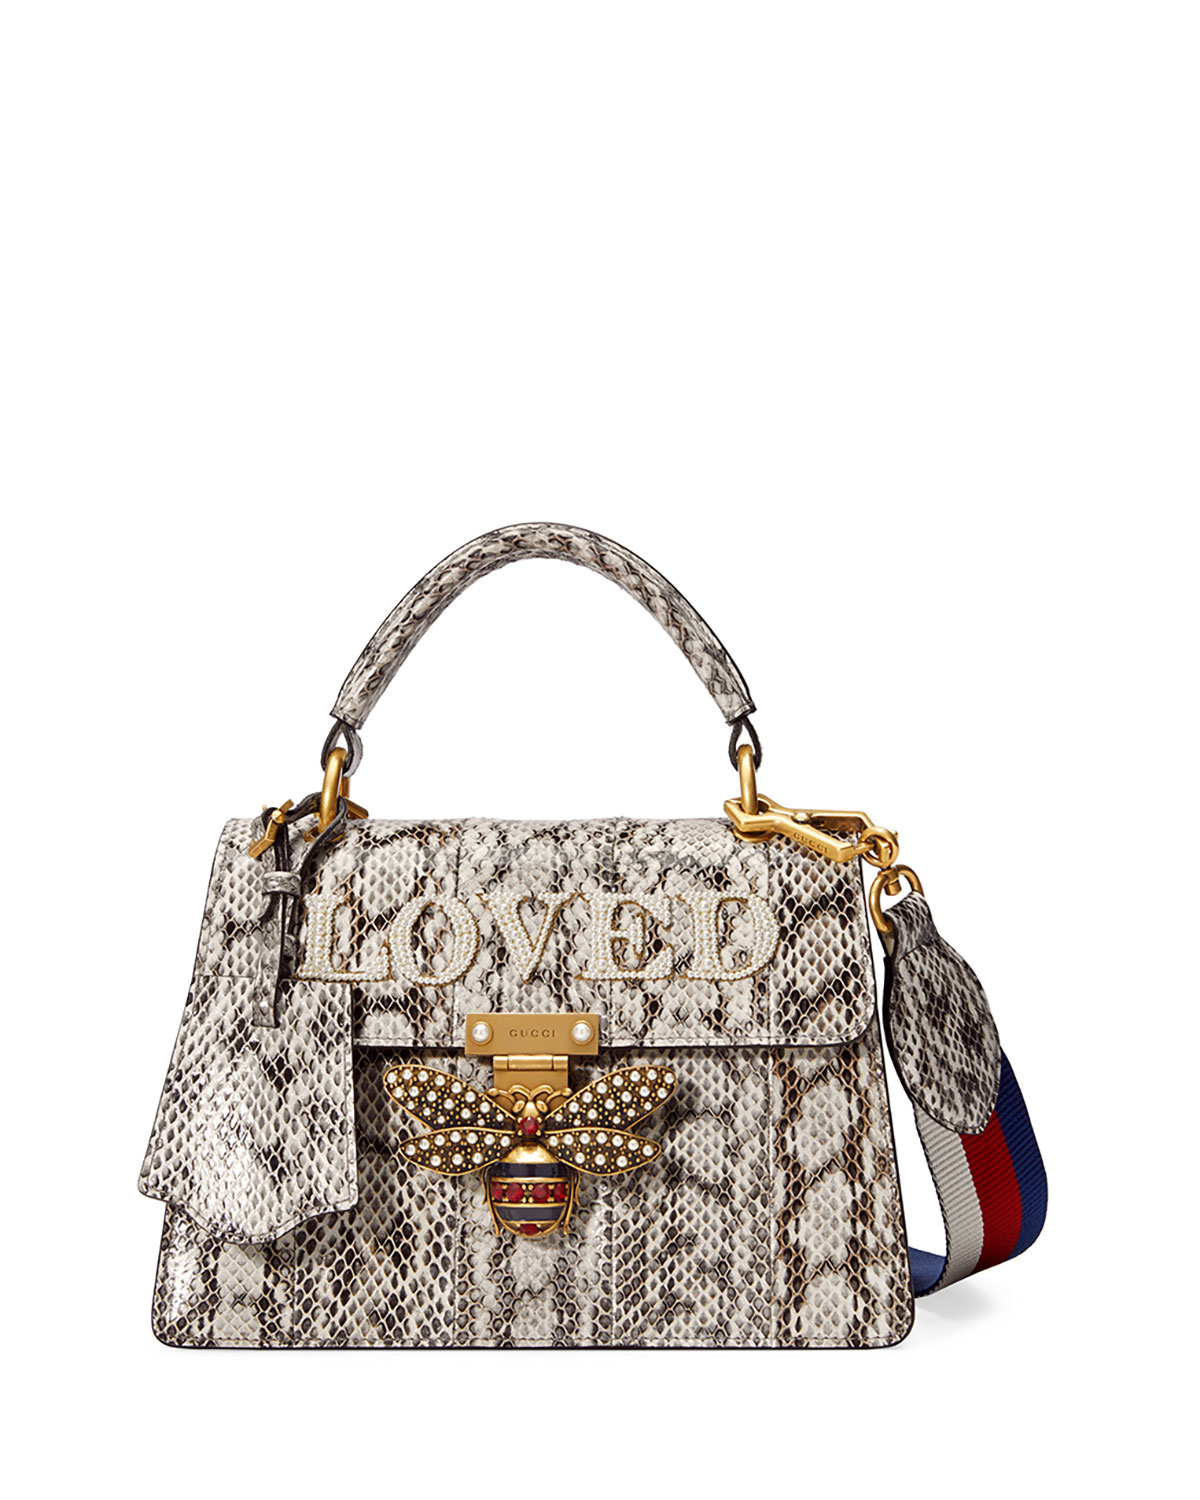 528ff252354 Gucci Queen Margaret Small Snakeskin Top-Handle Bag